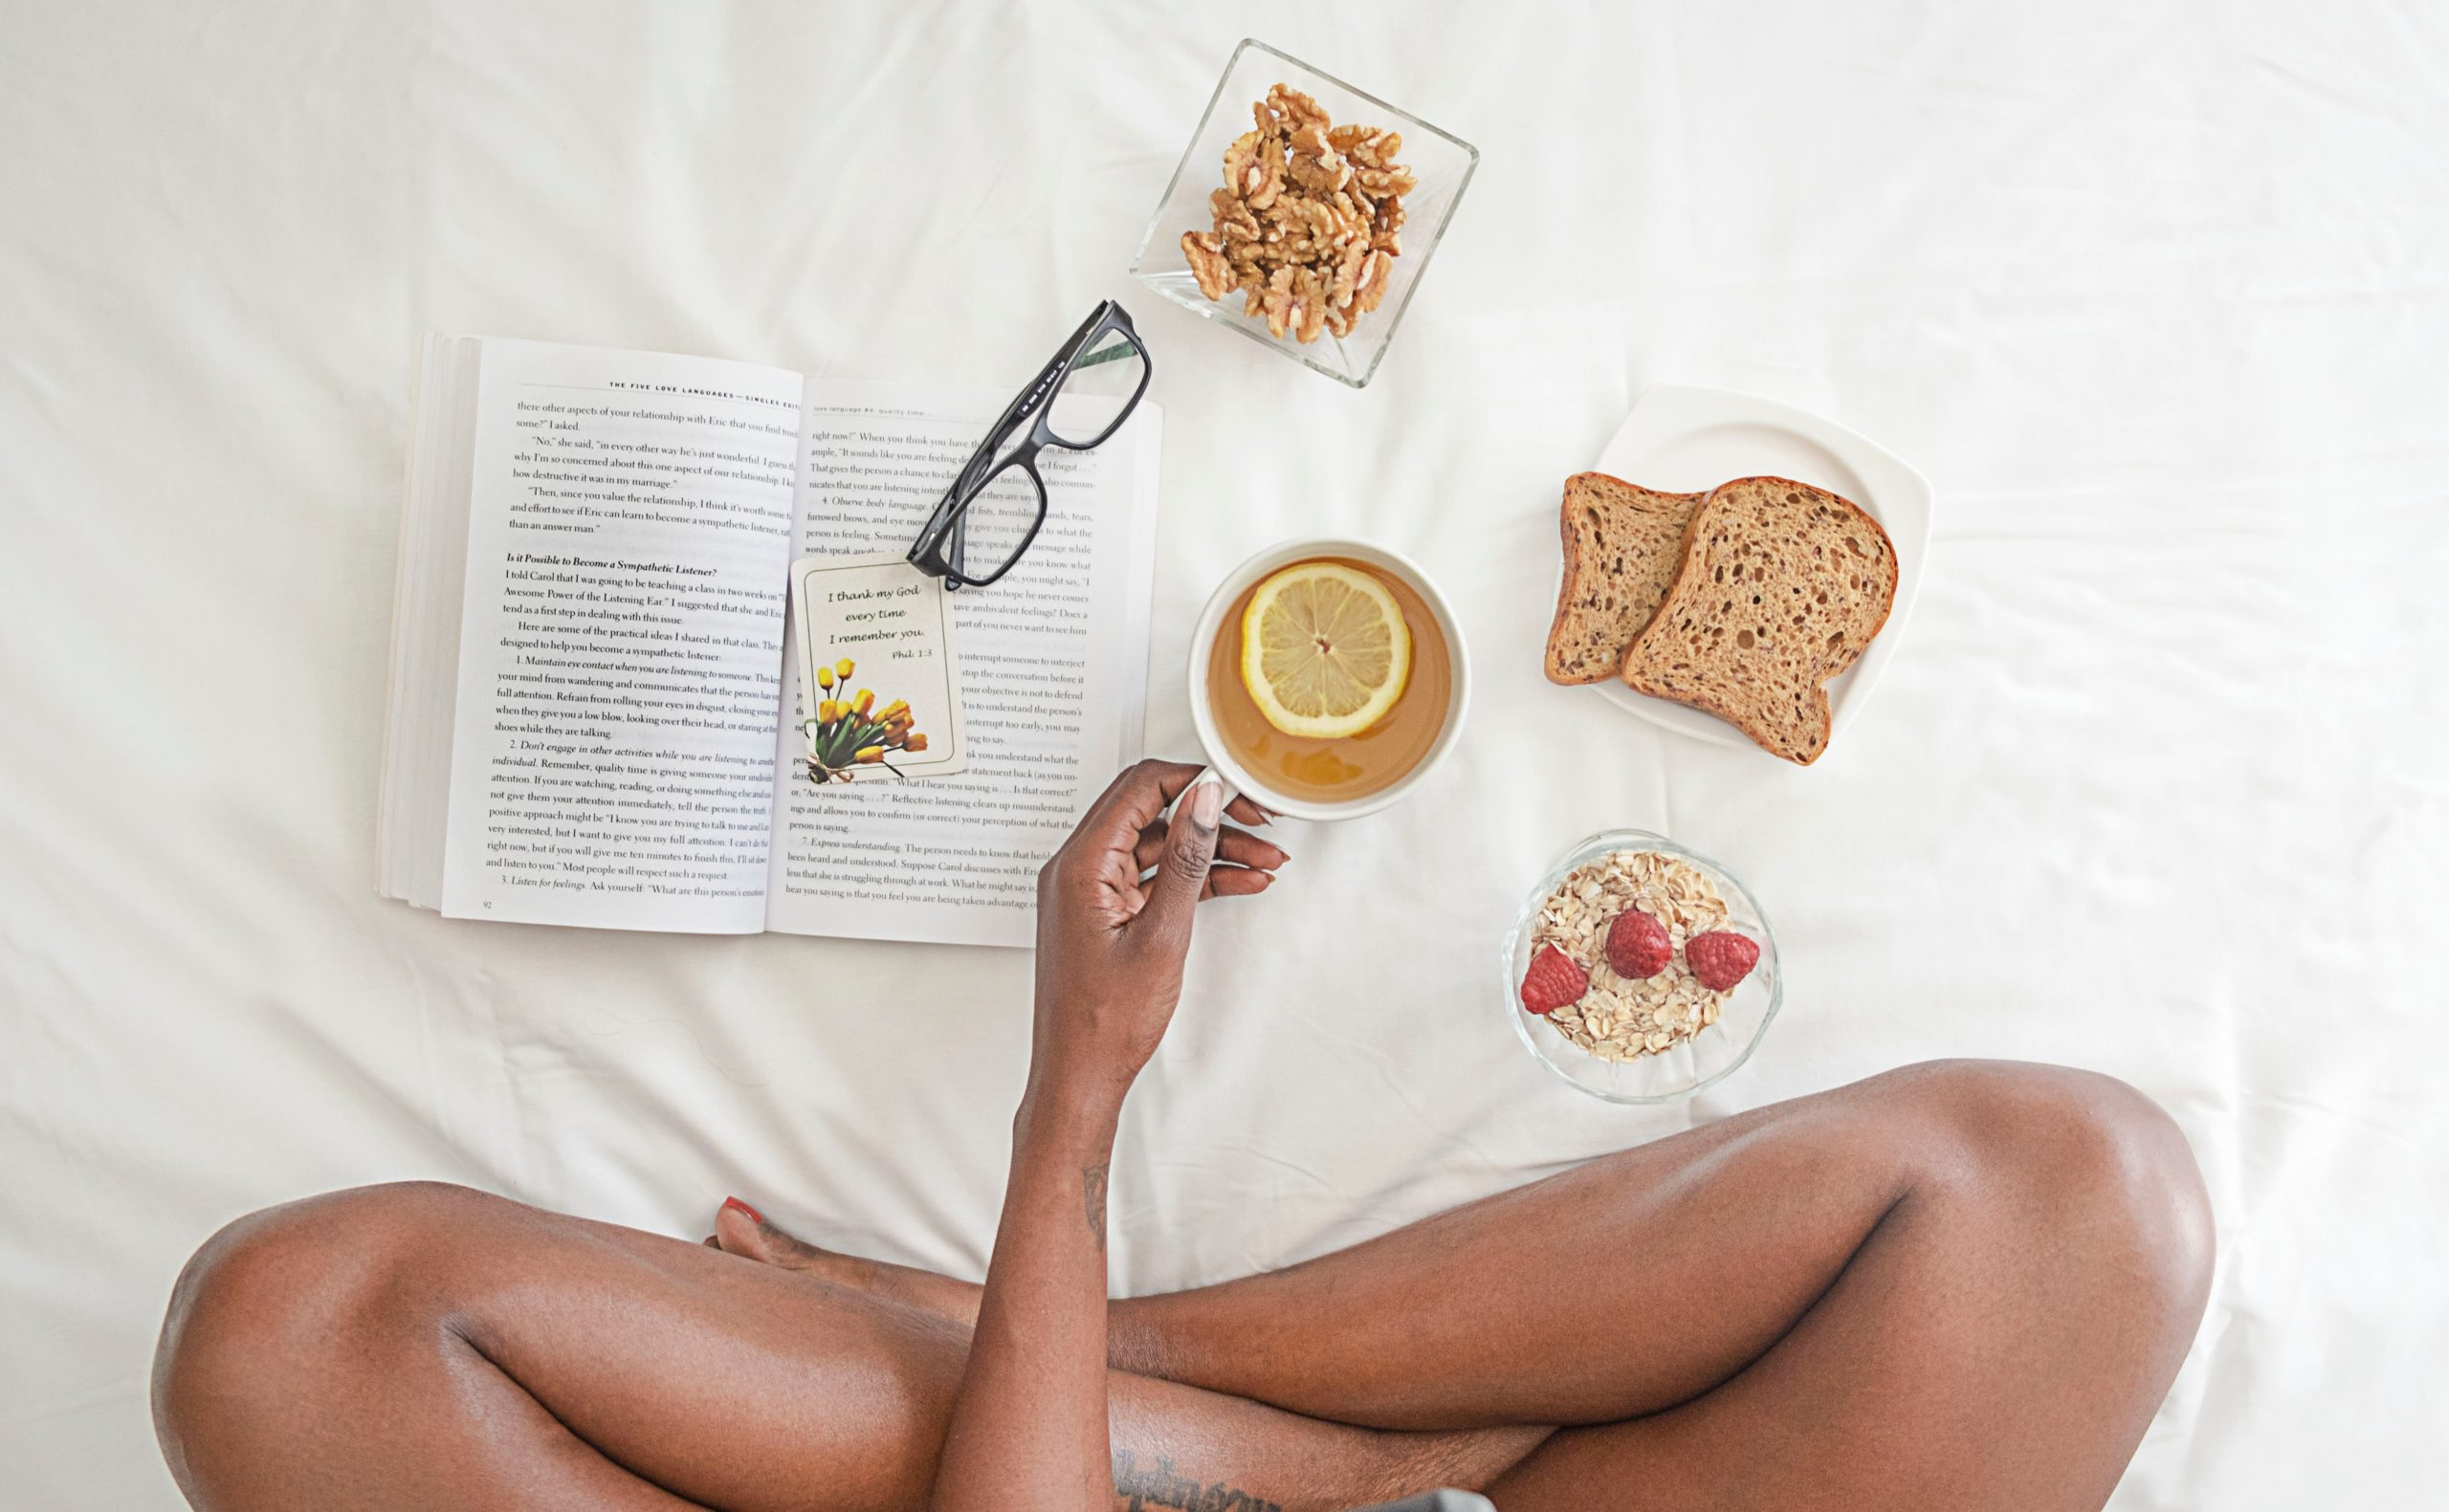 9 HABITS TO ADD TO YOUR MORNING ROUTINE FOR A GREAT DAY